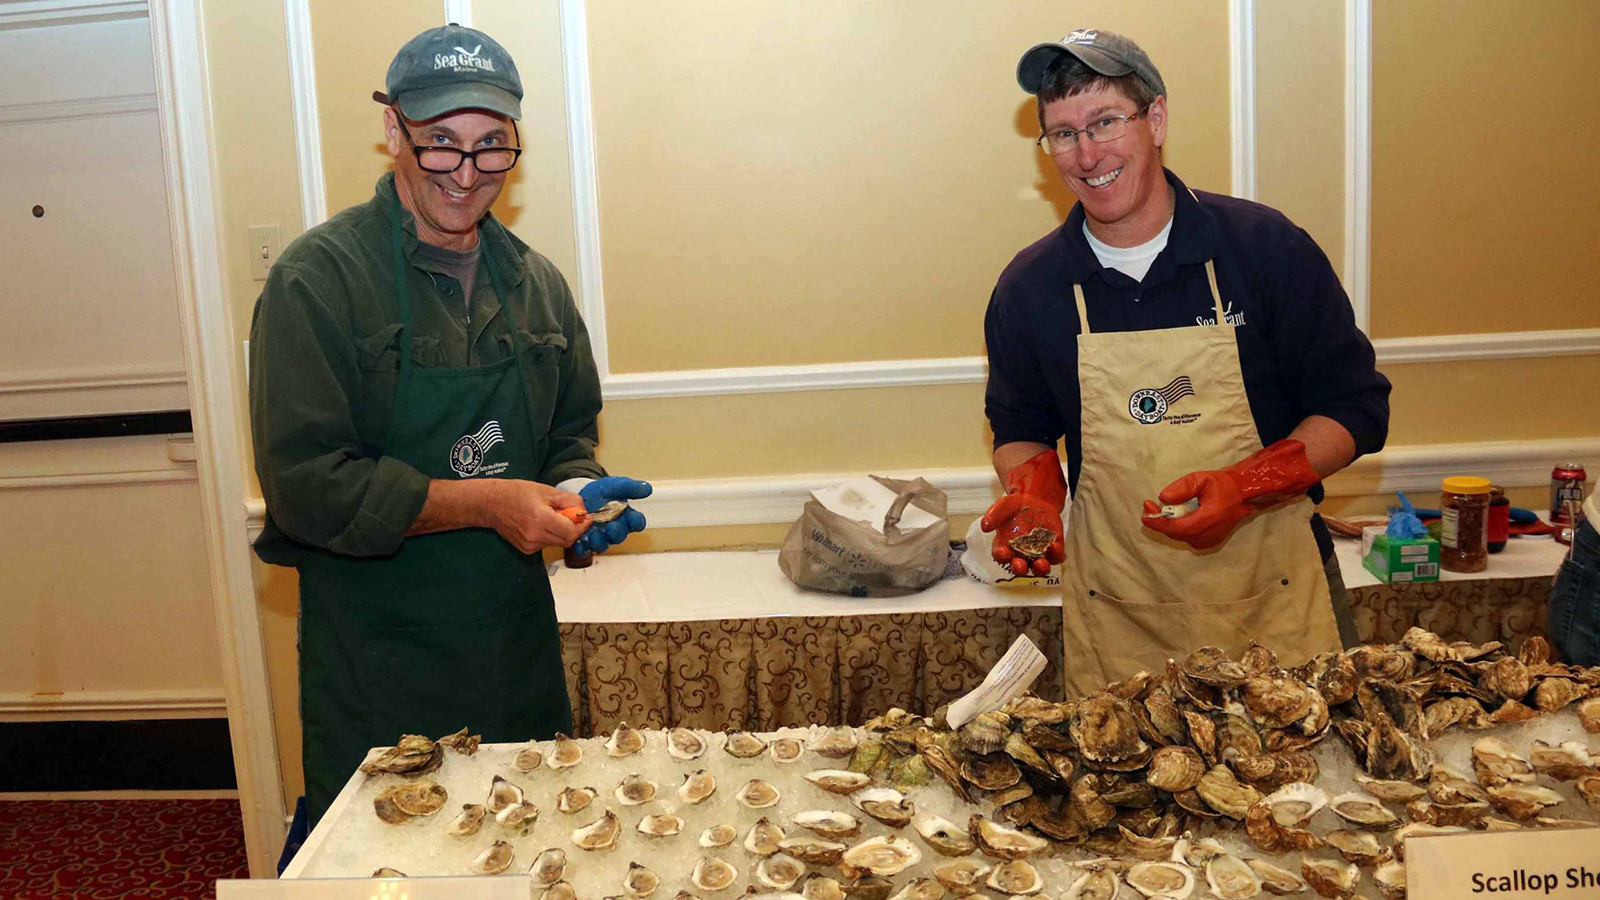 Two smiling men shucking shellfish behind a table of scallops and oysters on the half-shell